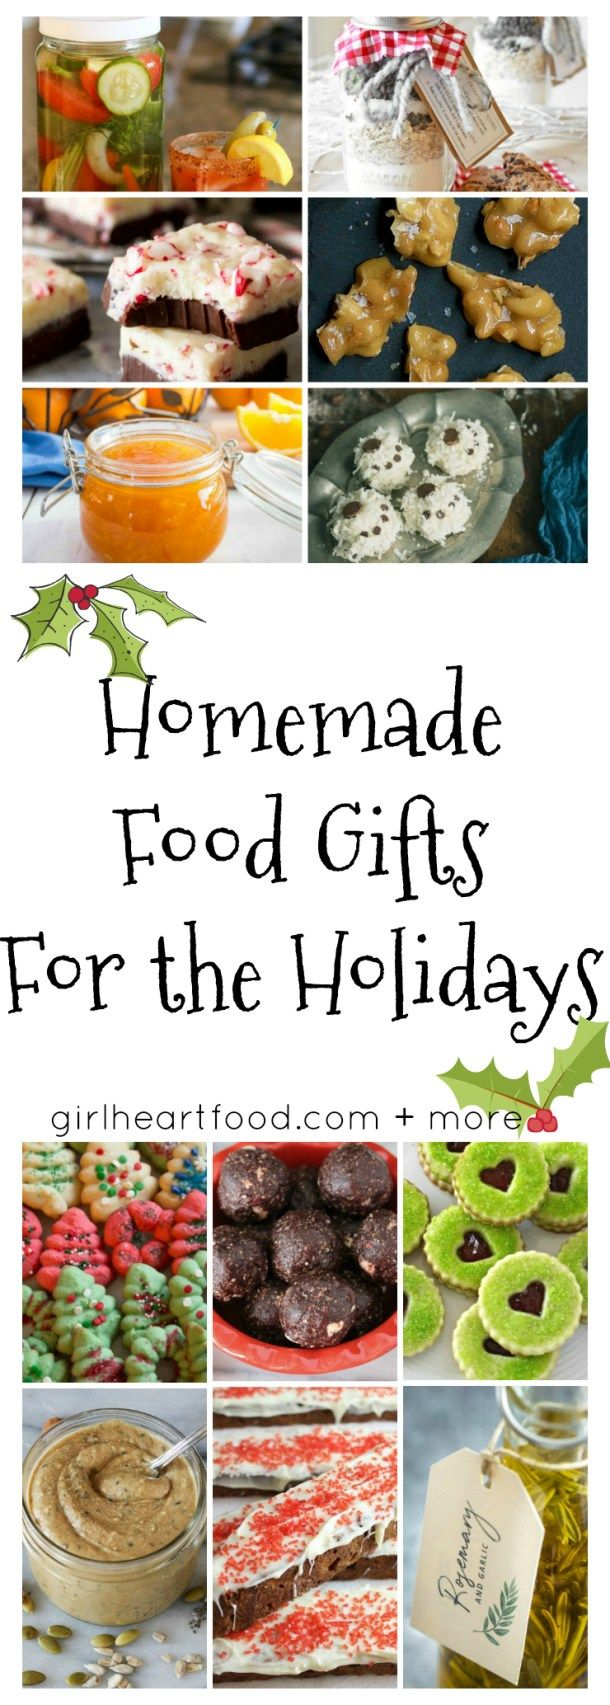 1181 best Christmas images on Pinterest | Xmas, Baking center and ...